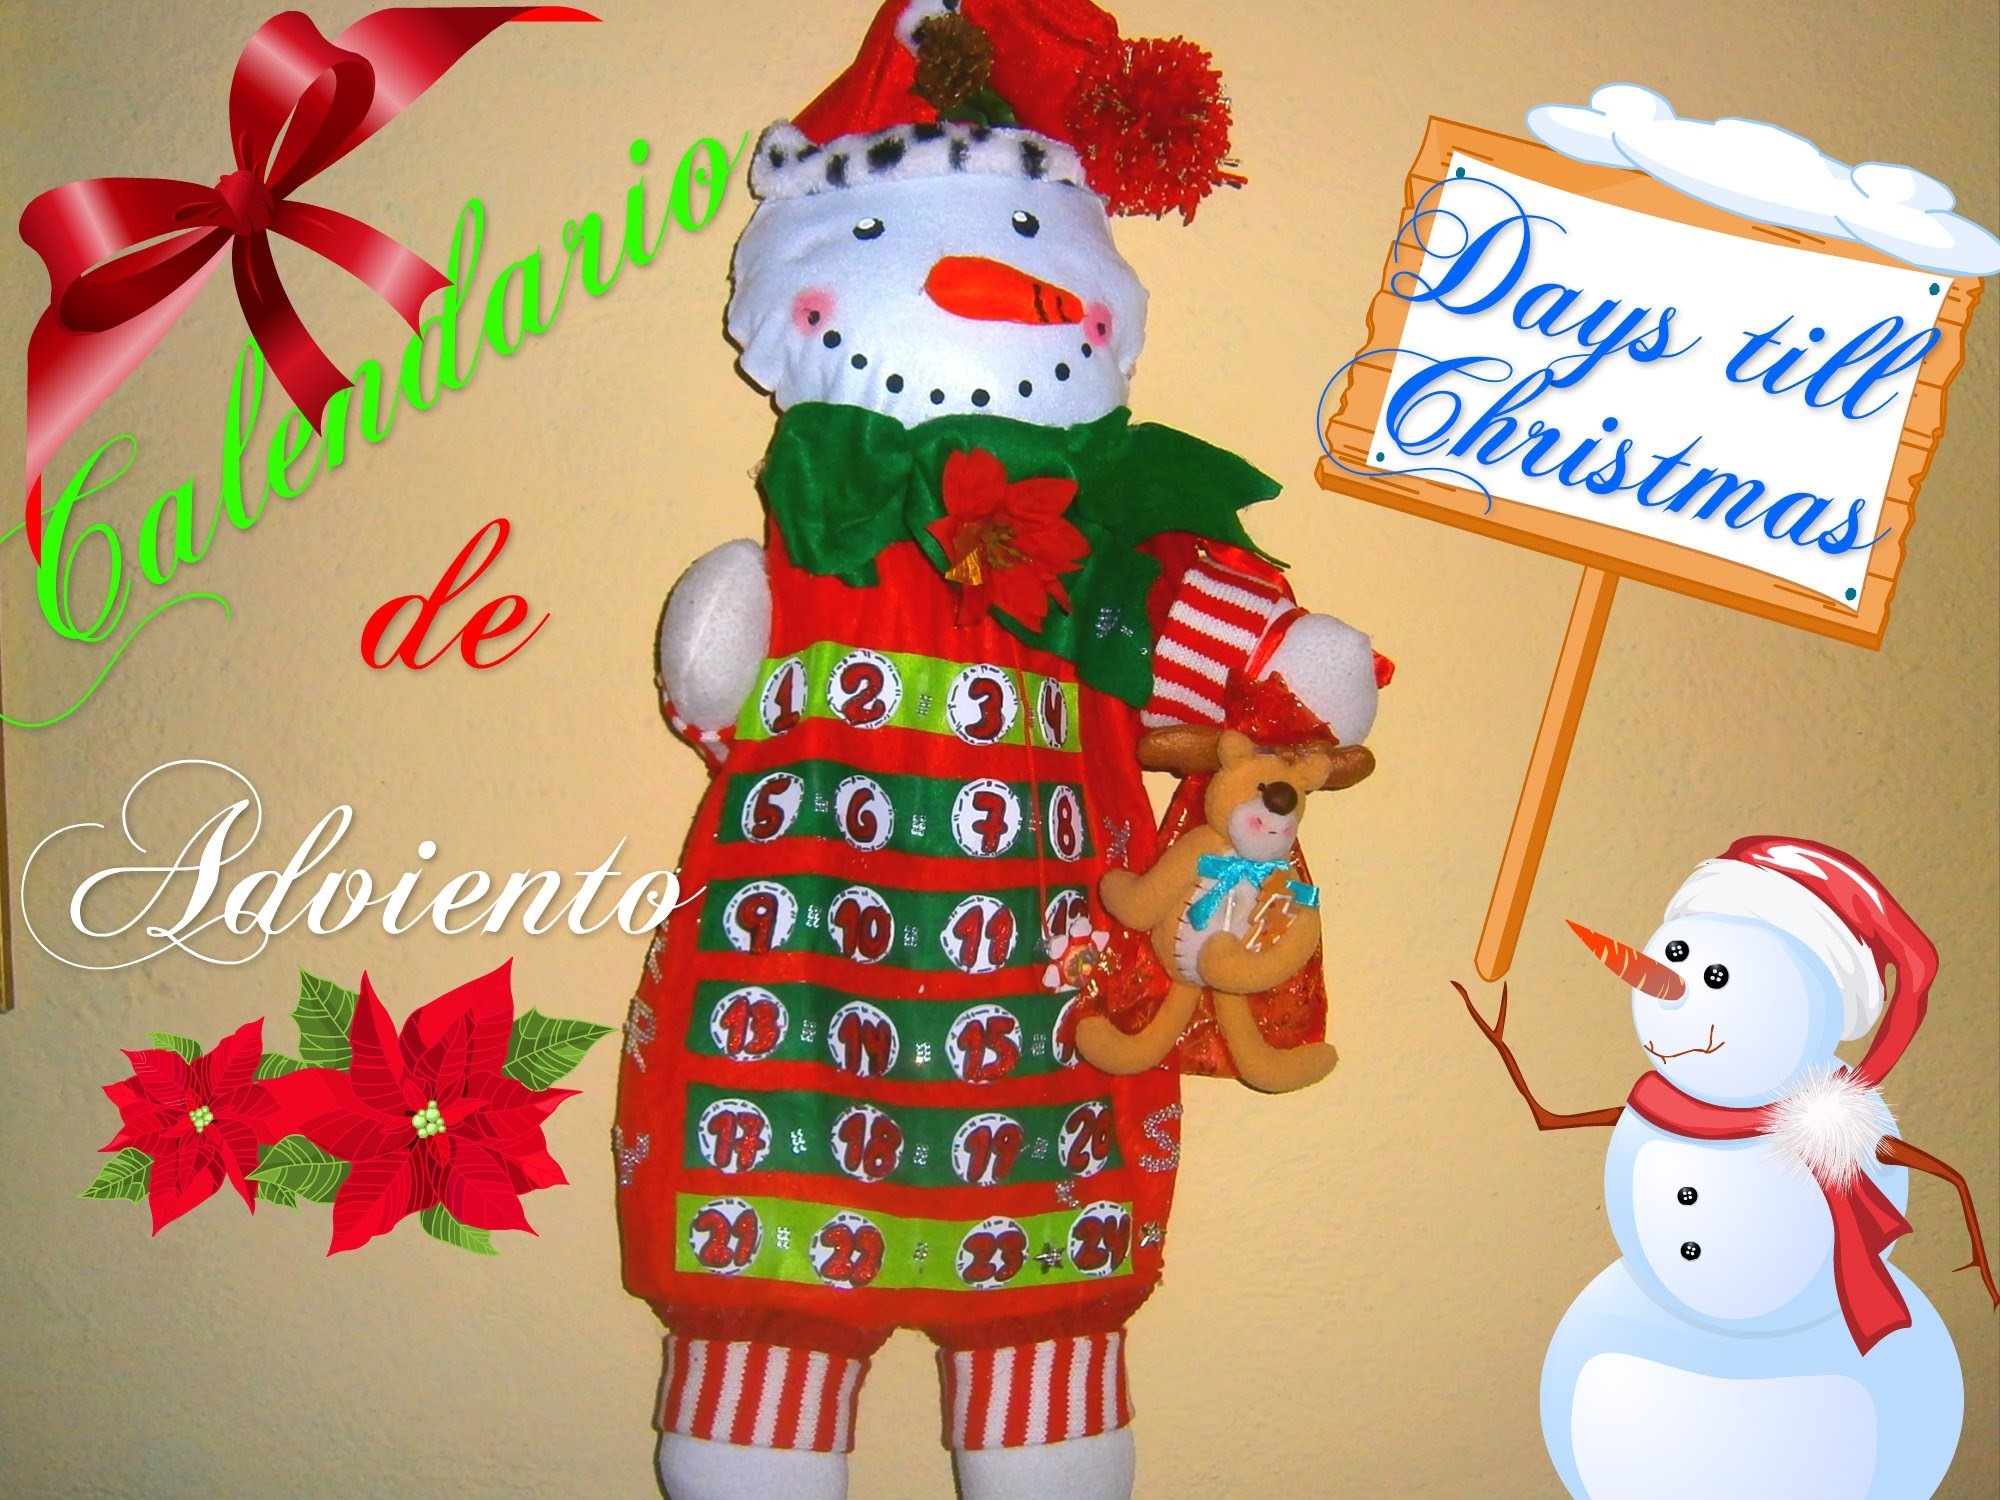 Calendario de Adviento en fieltro (muñeco de Nieve).DIY Holiday Advent Calendar